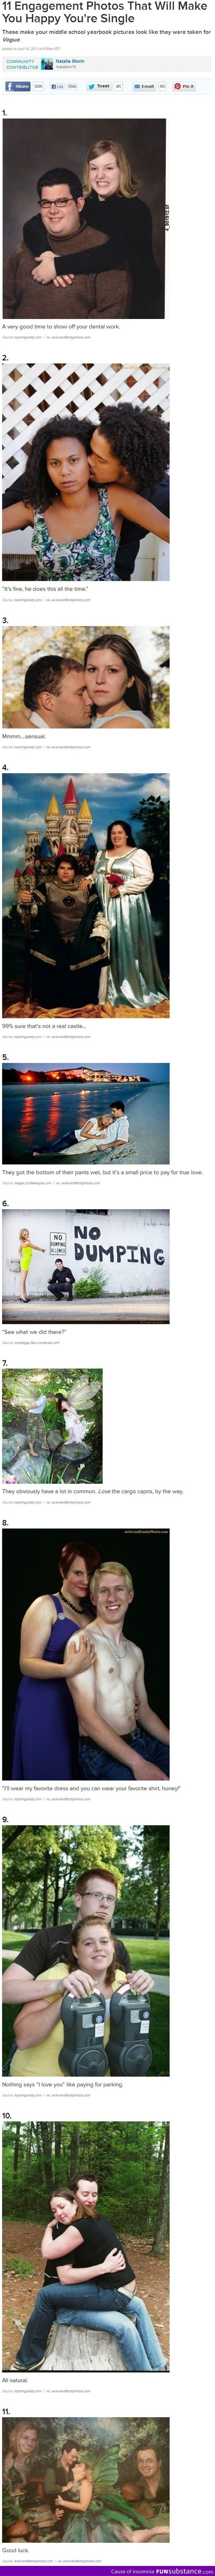 Omg can't stop laughing ! : 11 Engagement, Engagement Pictures, Giggle, Engagement Photos, Engagement Pics, Happy You Re, Fail Engagement, Photos Scary